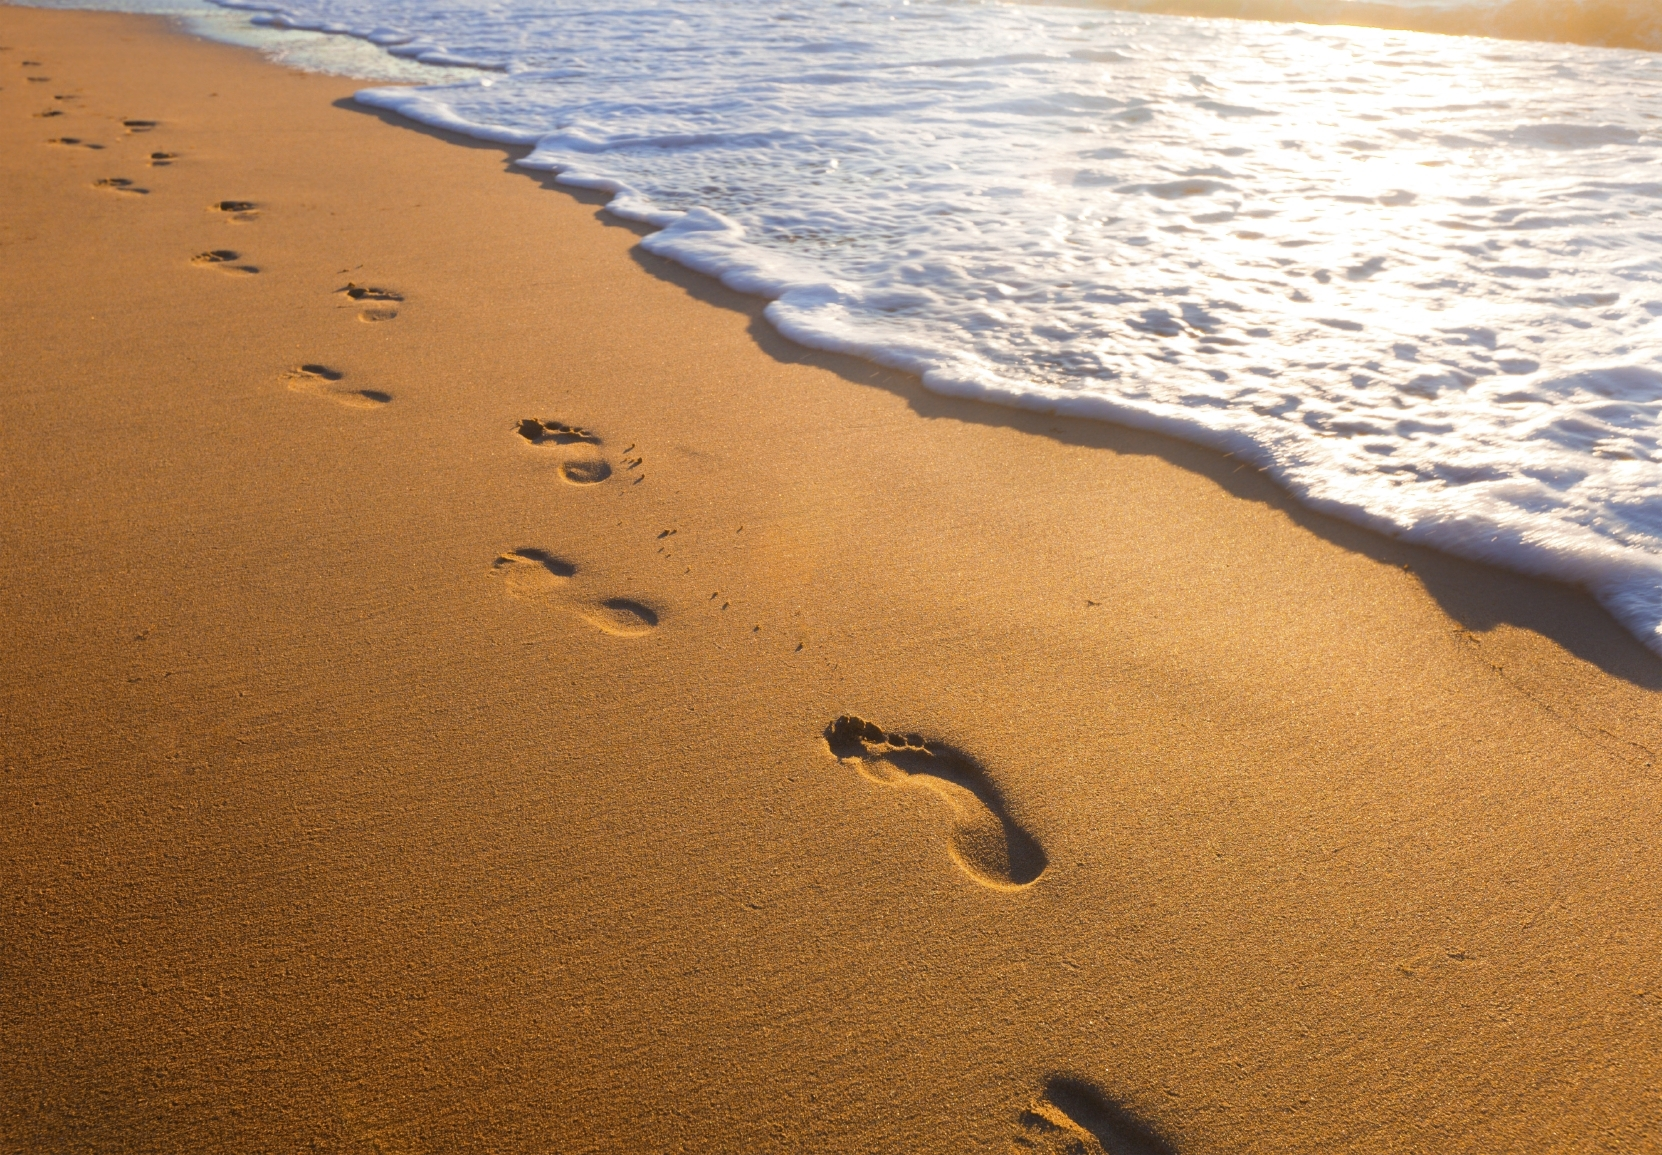 10 Latest Footprints In The Sand Pictures FULL HD 1920×1080 For PC Desktop